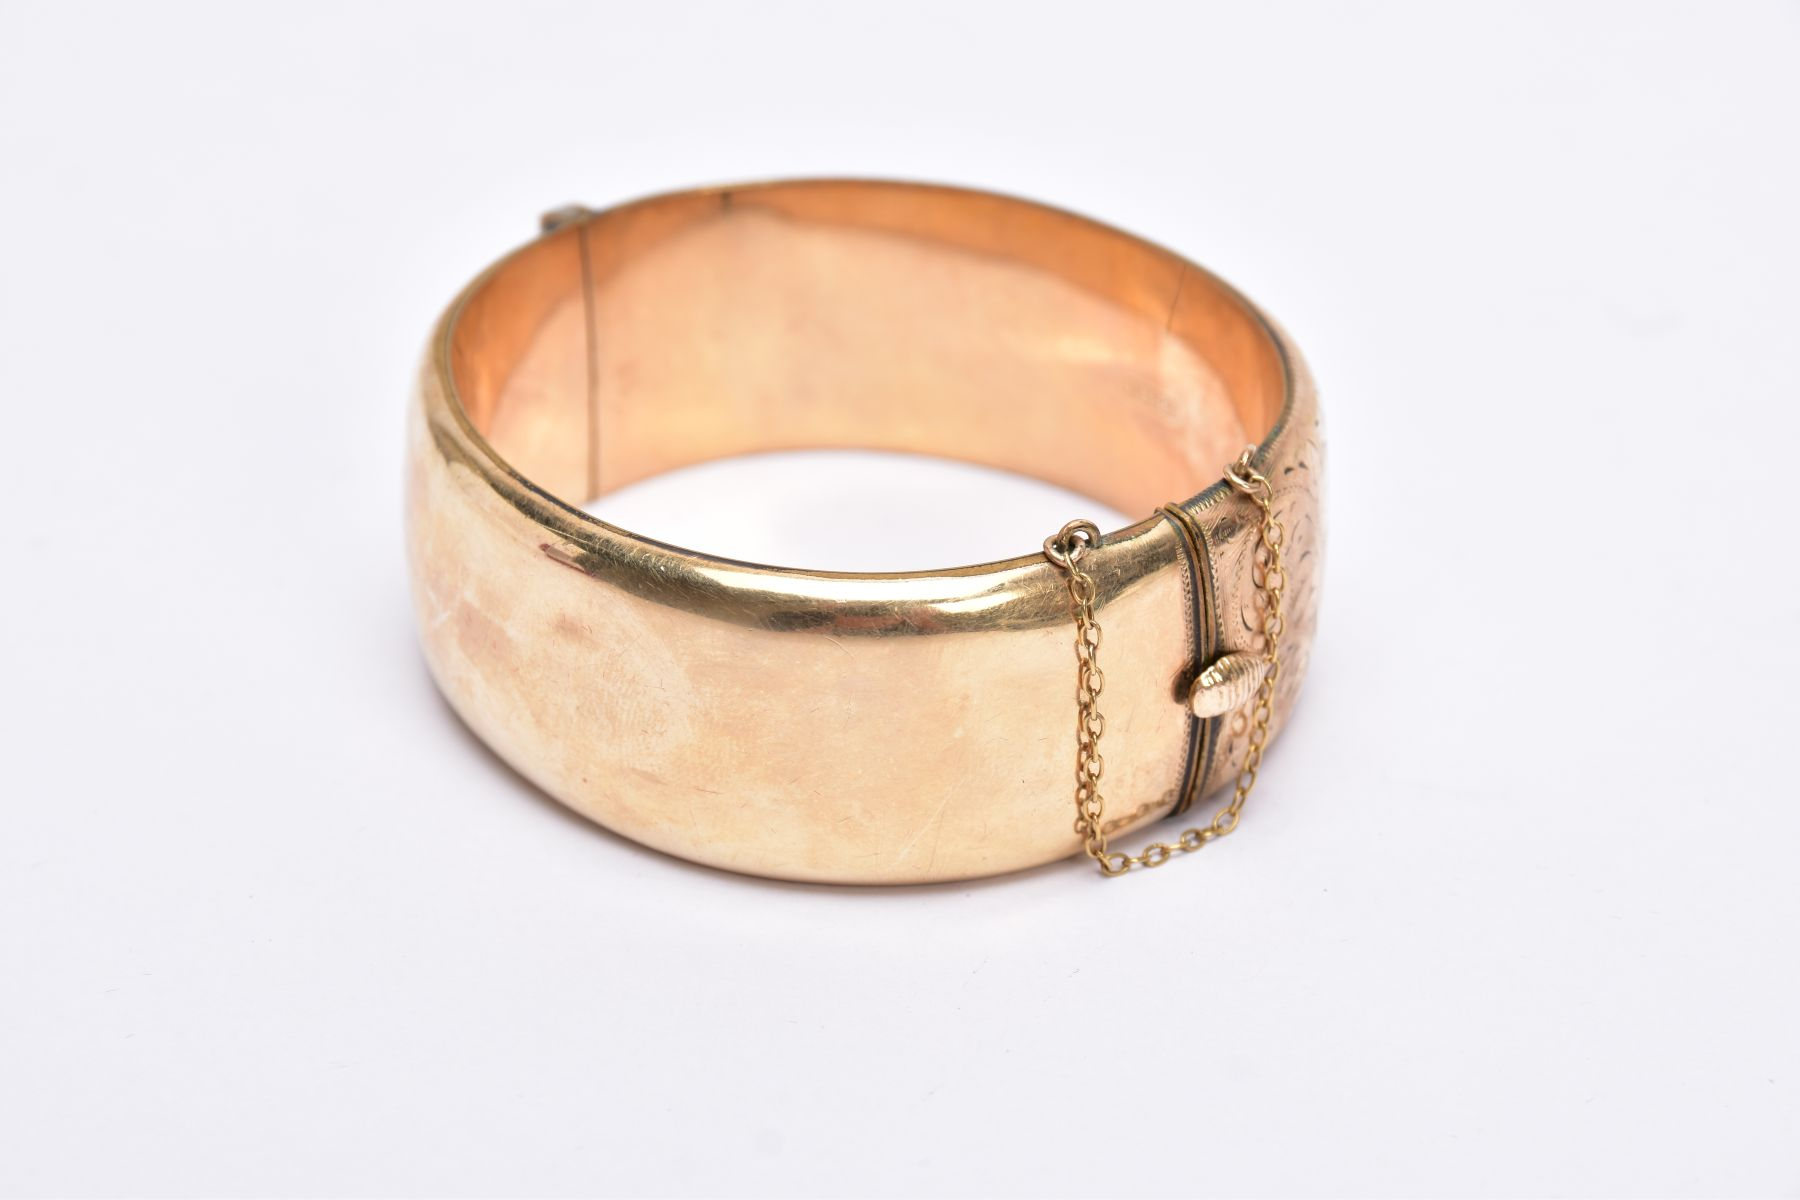 A ROLLED GOLD WIDE BANGLE, hinged bangle with a half engraved foliate design, push pin clasp, fitted - Image 3 of 3